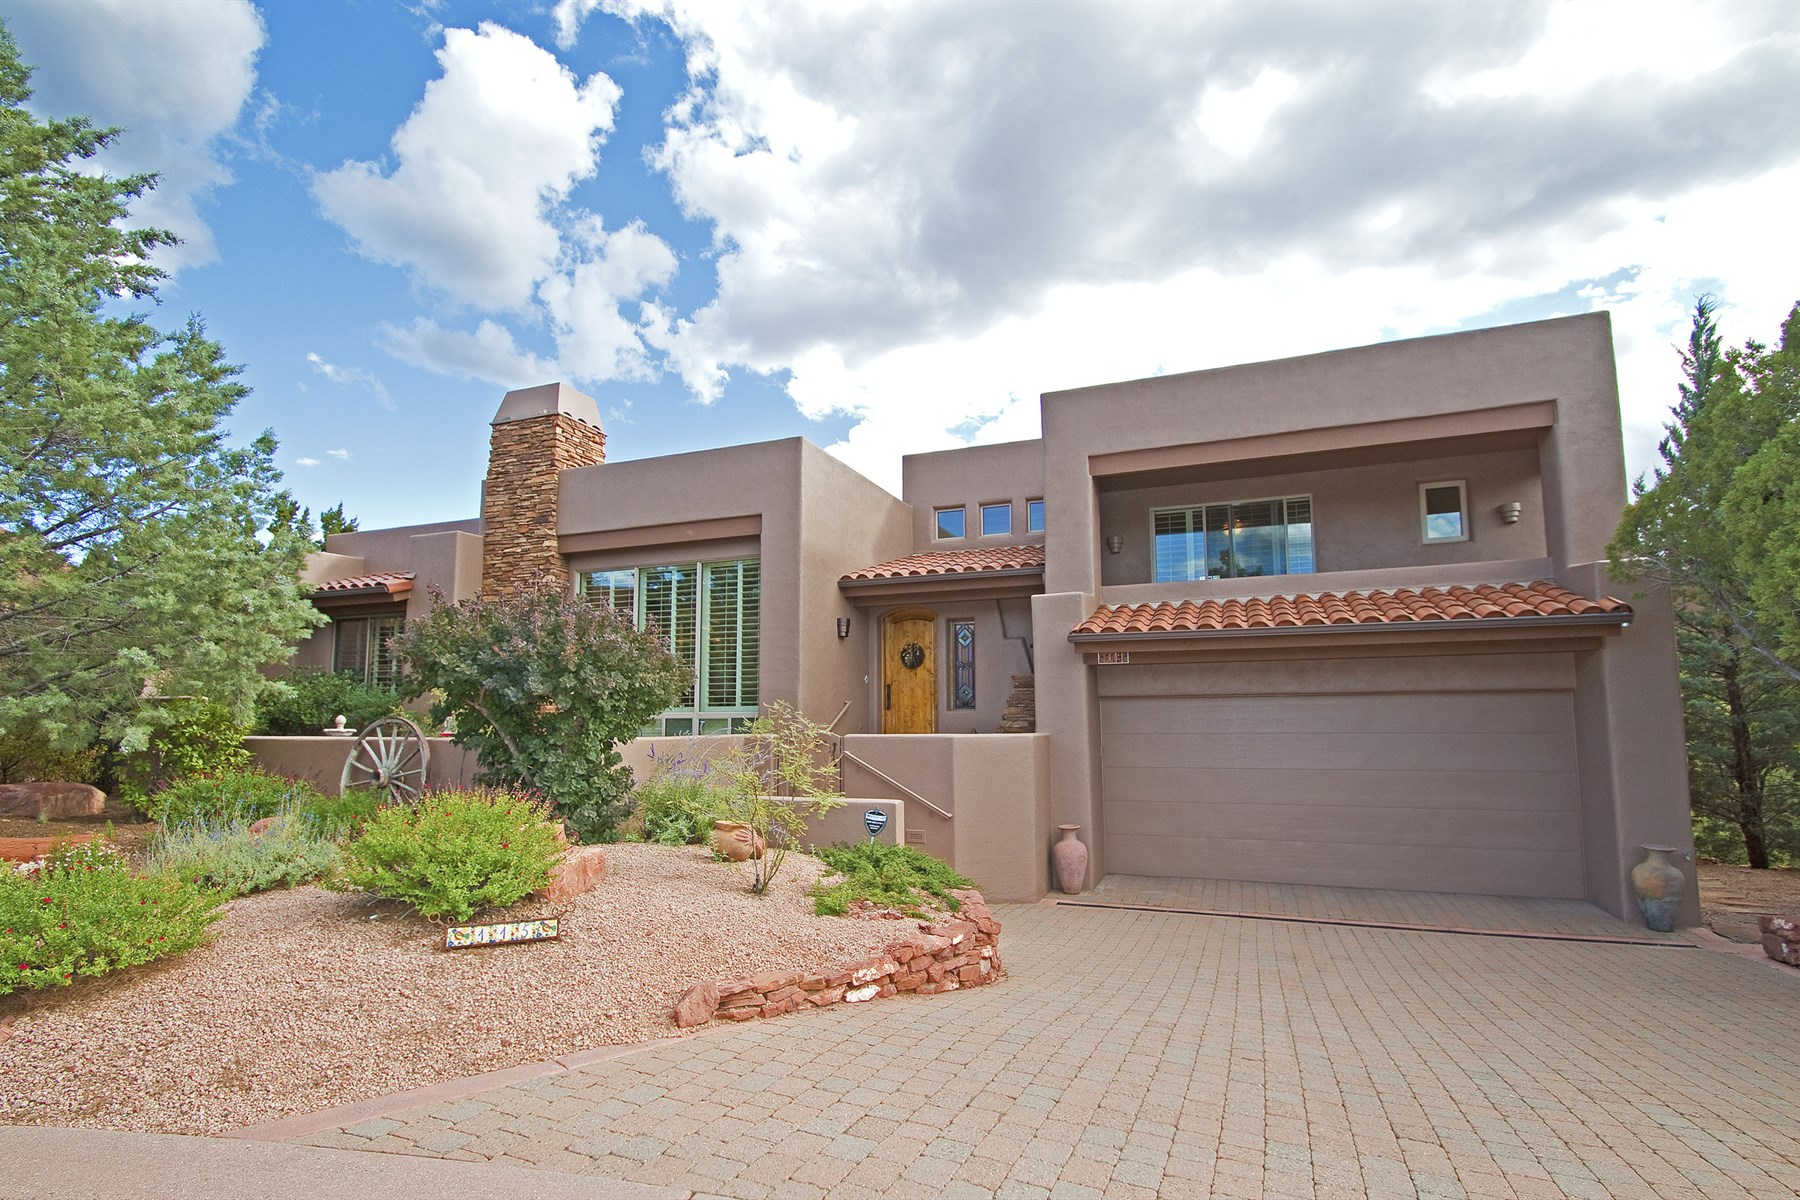 Casa Unifamiliar por un Venta en Beautiful home in one of West Sedona's most desirable gated communities 115 Calle Marguerite Sedona, Arizona, 86336 Estados Unidos